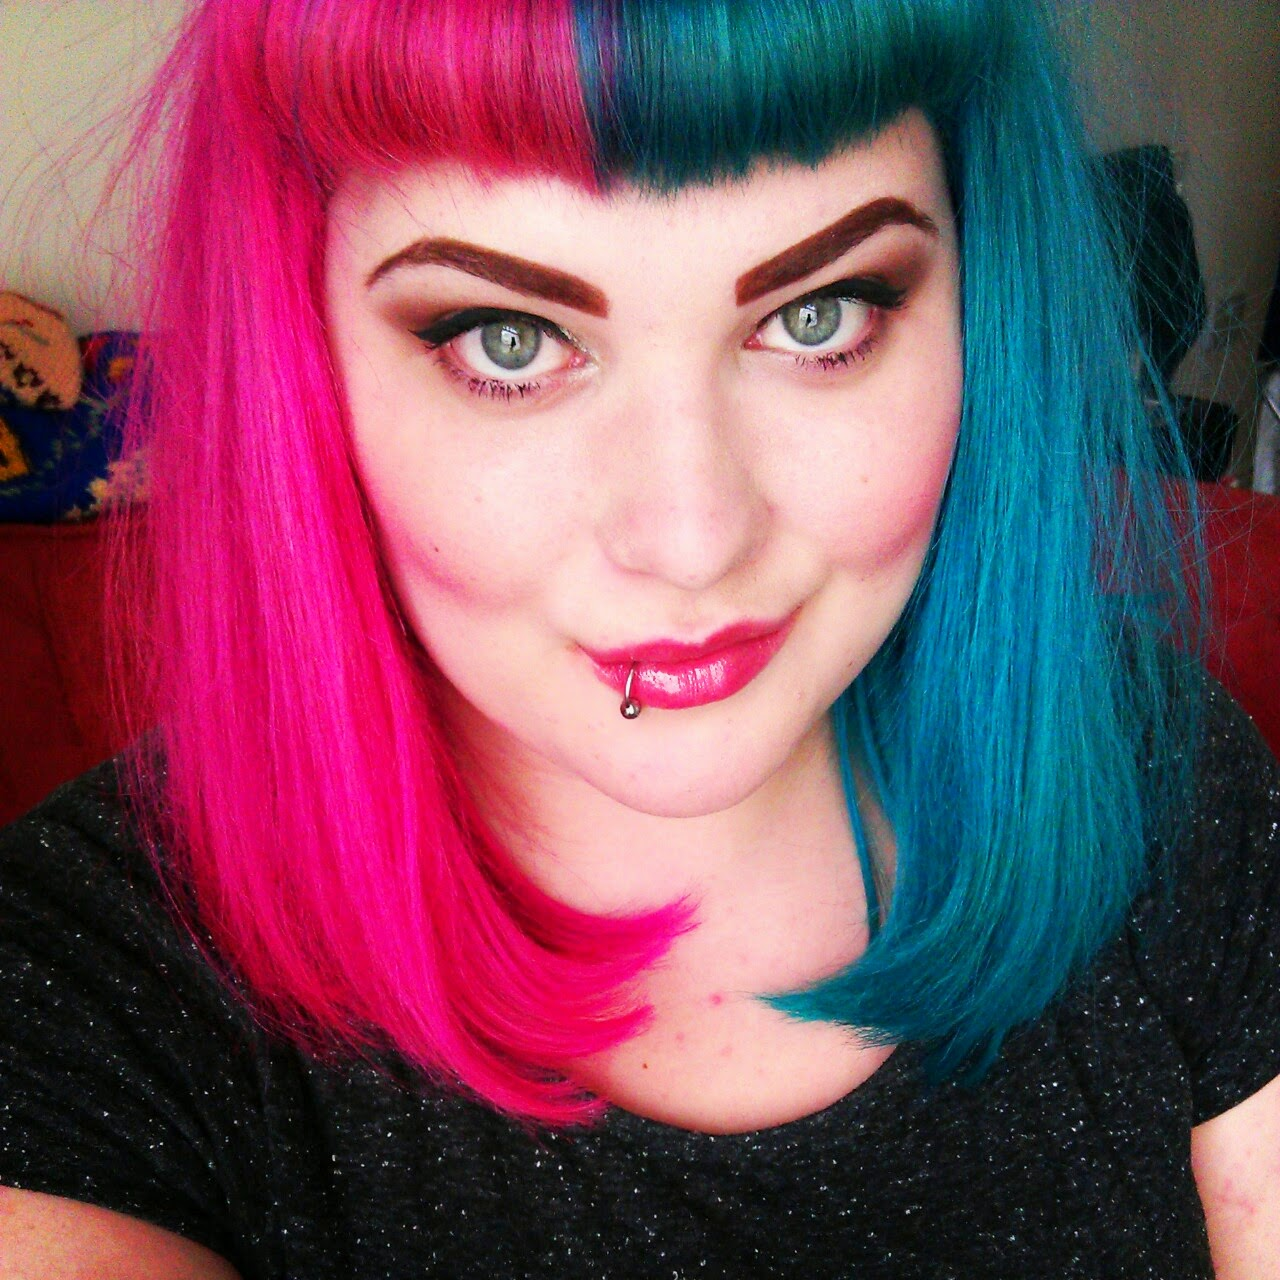 cruella devile split two tone half and half hair dye manic panic directions crazy color alternative short pink fuschia teal turquoise blue green